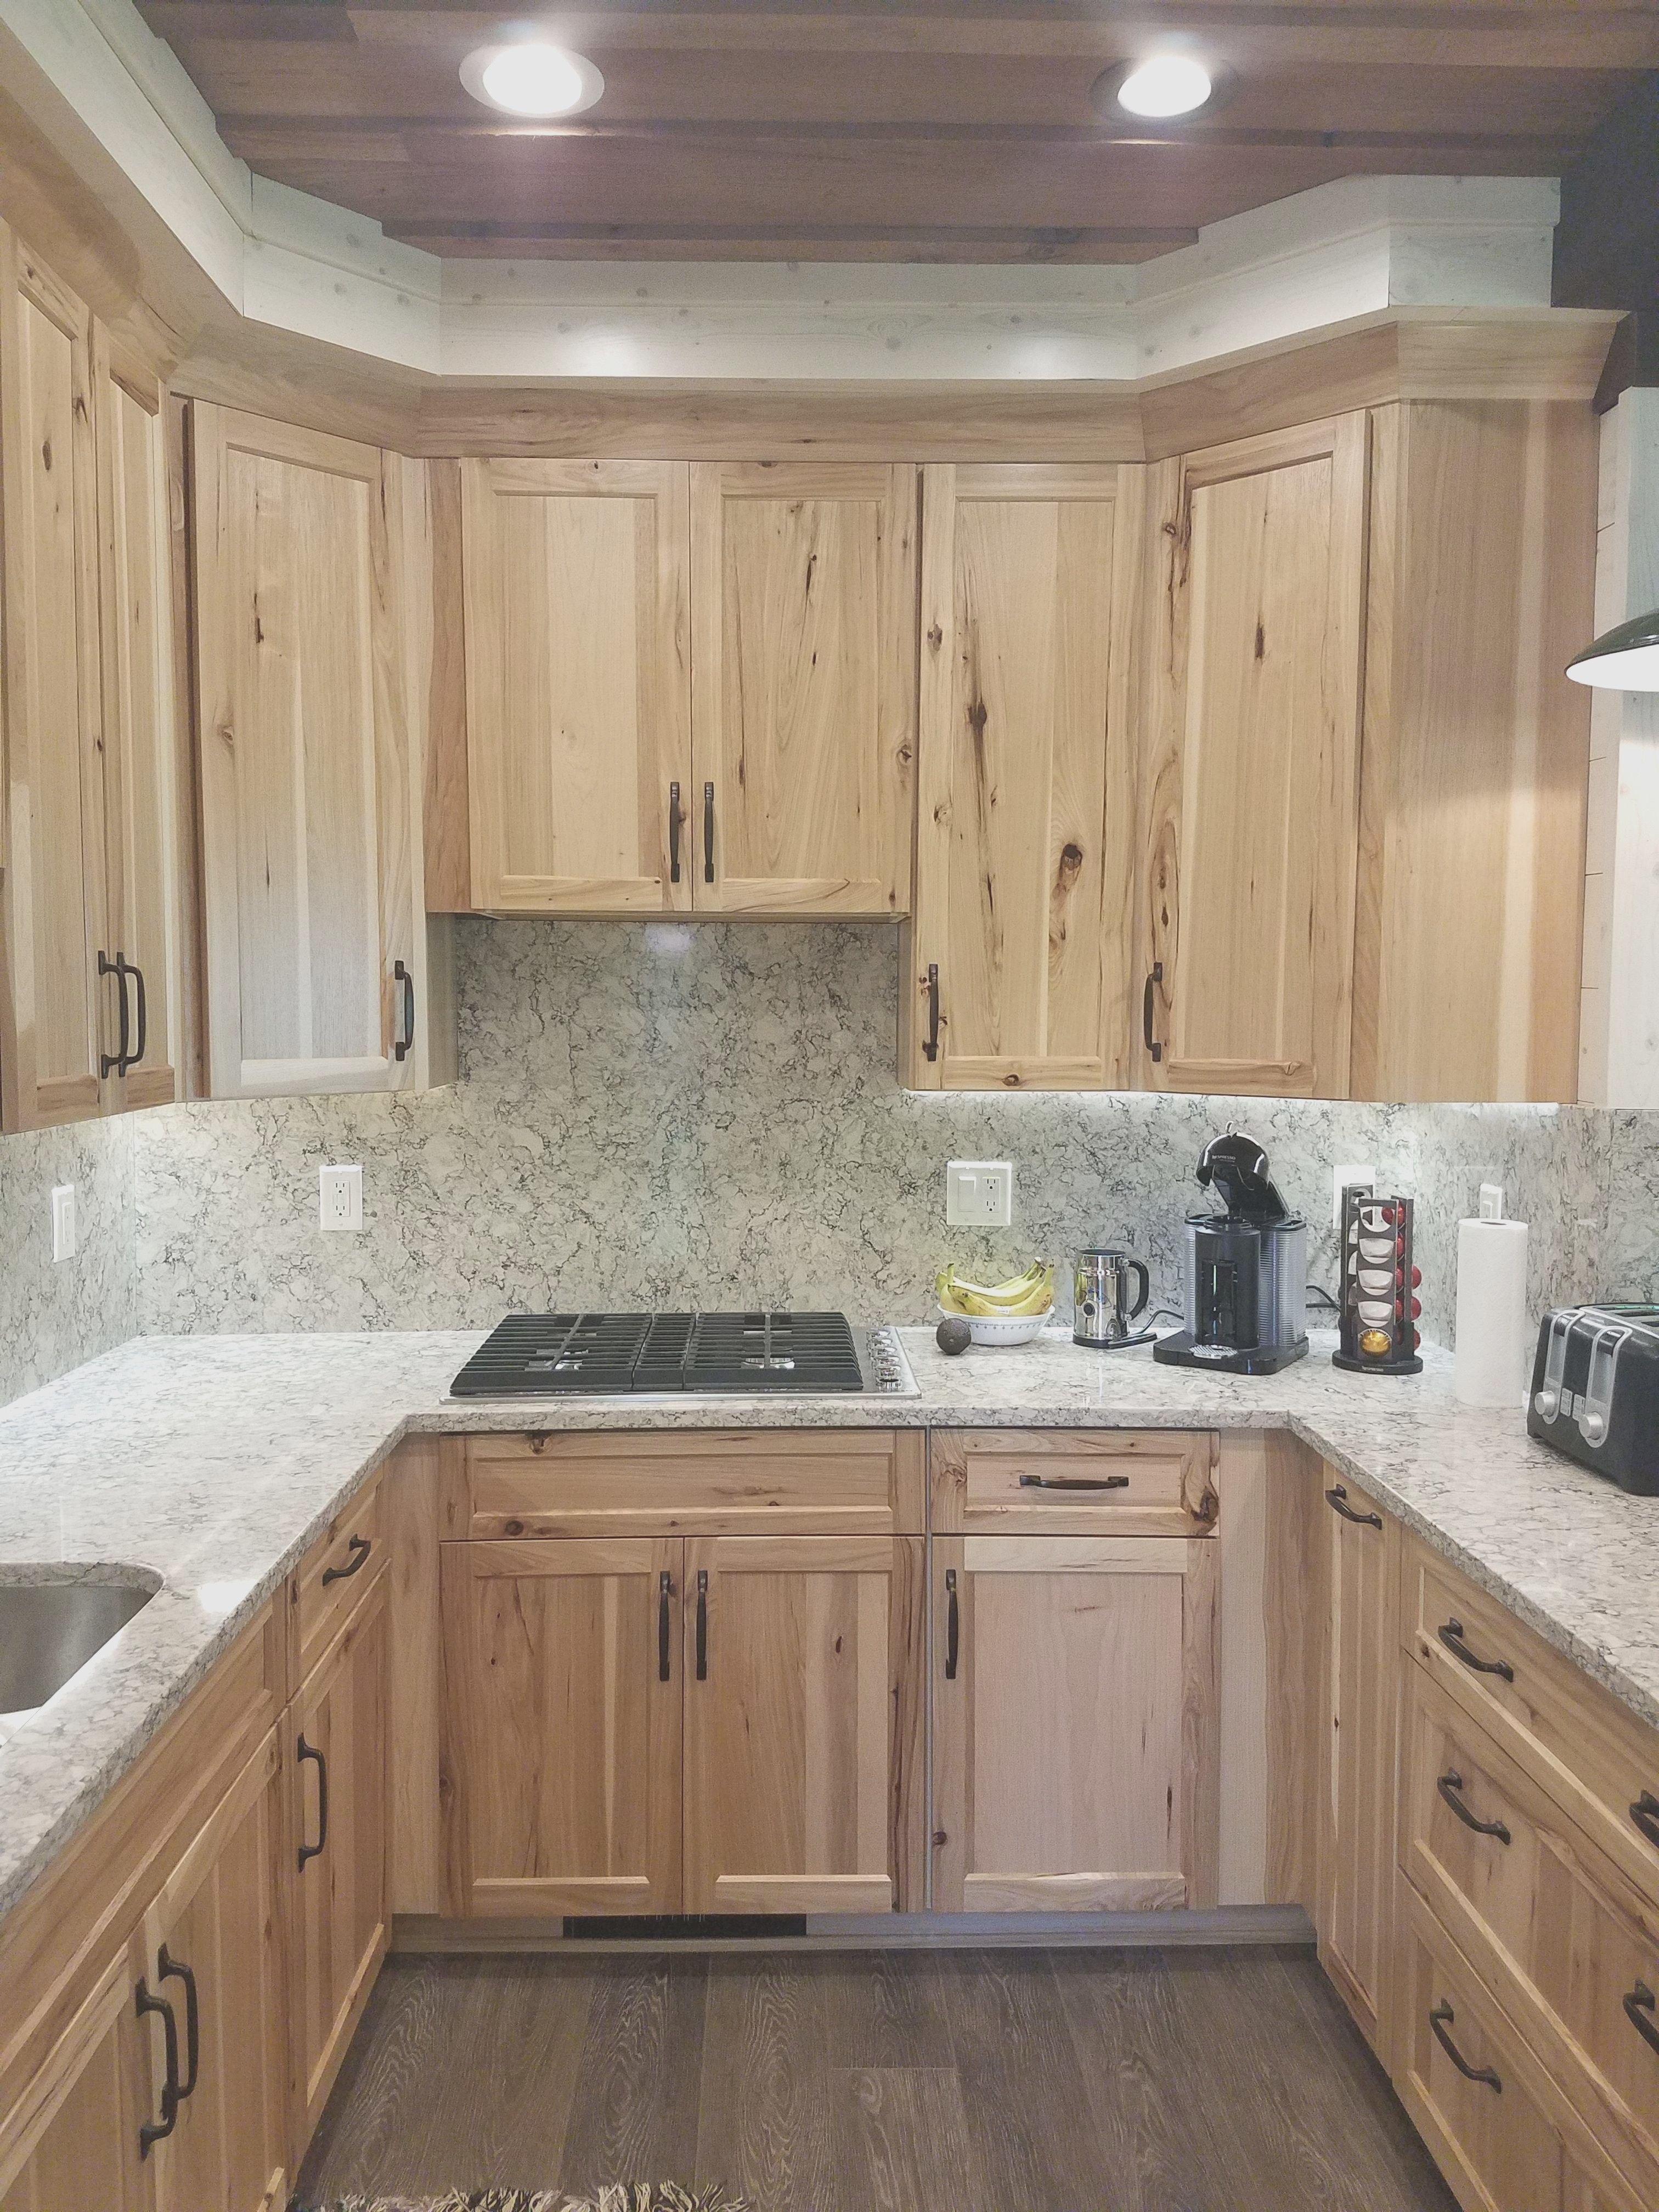 Awesome hickory cabinets with granite countertops ...